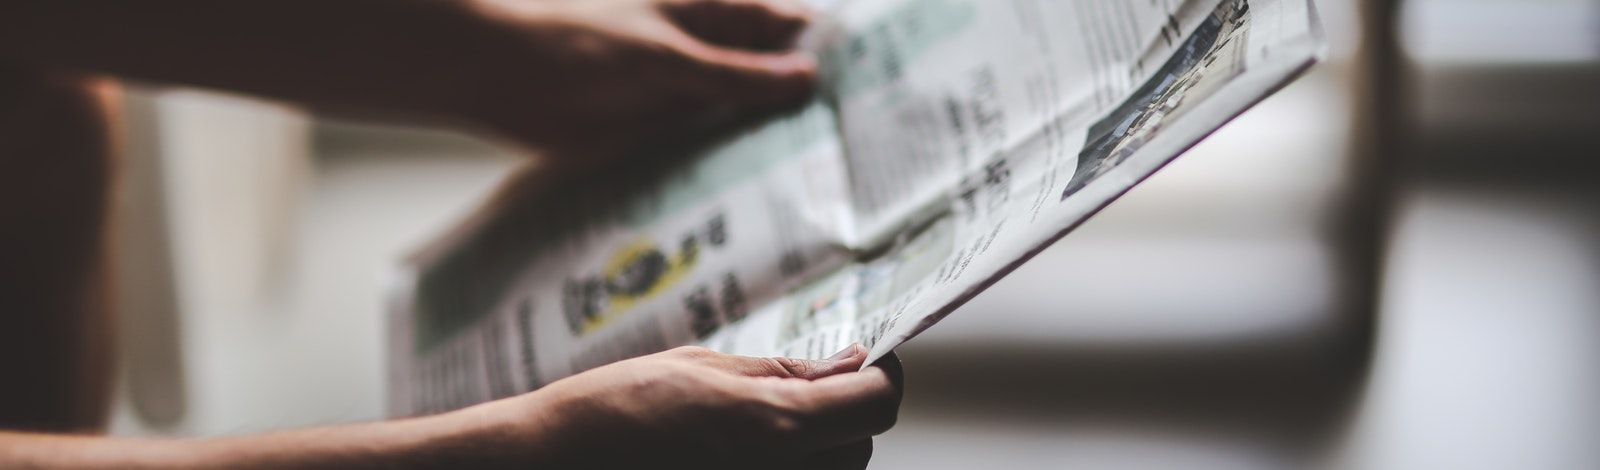 If you want to be in the know about what's going on at Reinvestment Partners, you've come to the right place. Here we aggregate news media coverage of our work across all programs.